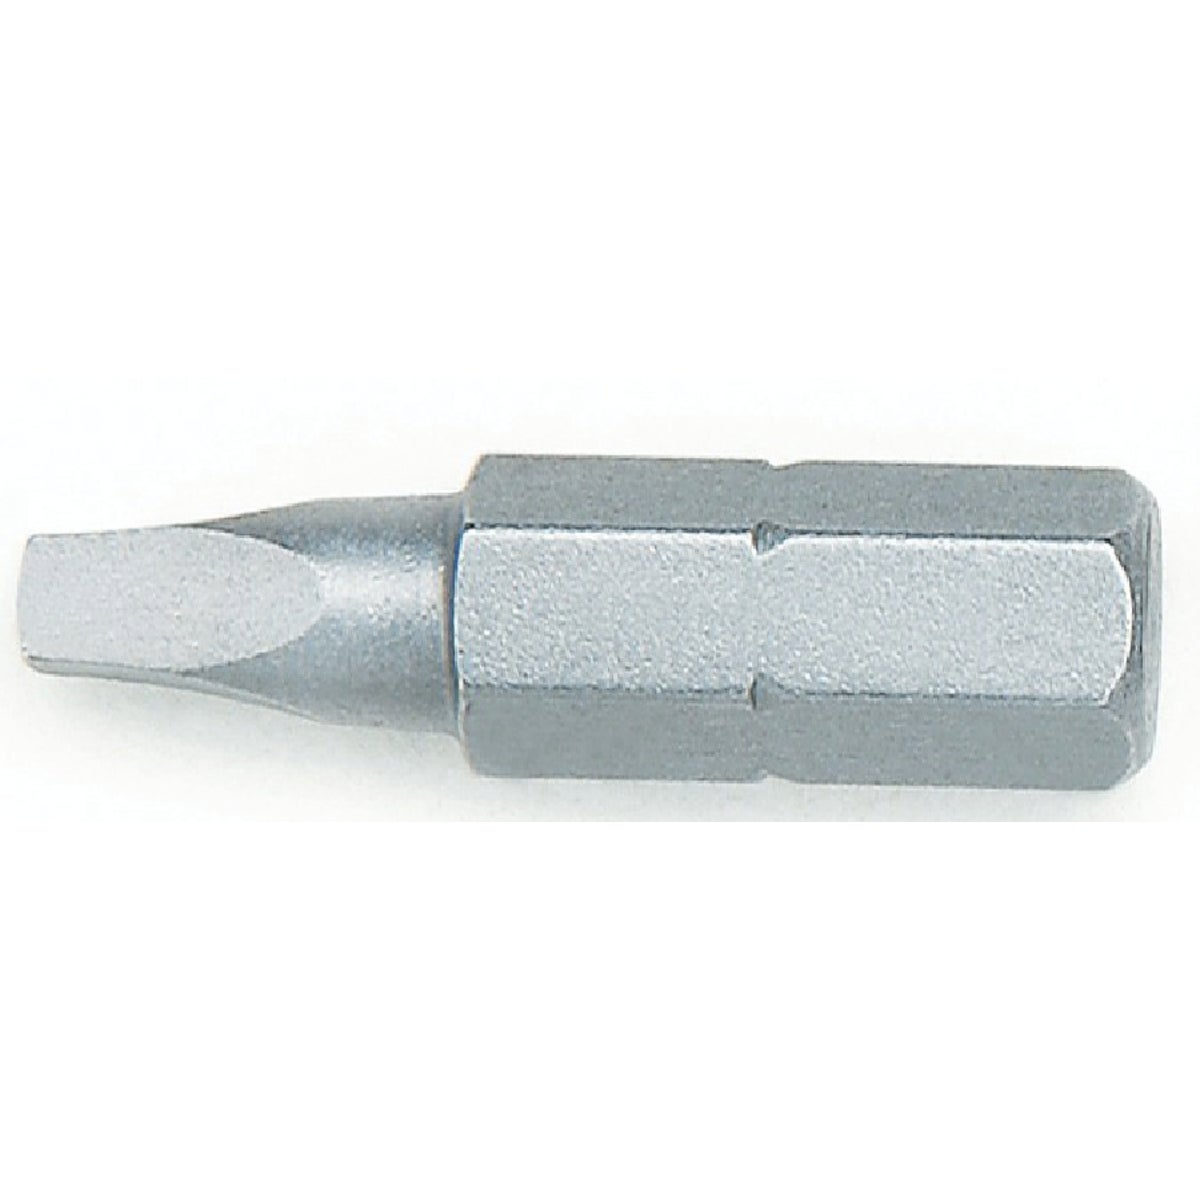 #3 SQ 2/CD SCREW BIT - 3512072C by Irwin Industr Tool